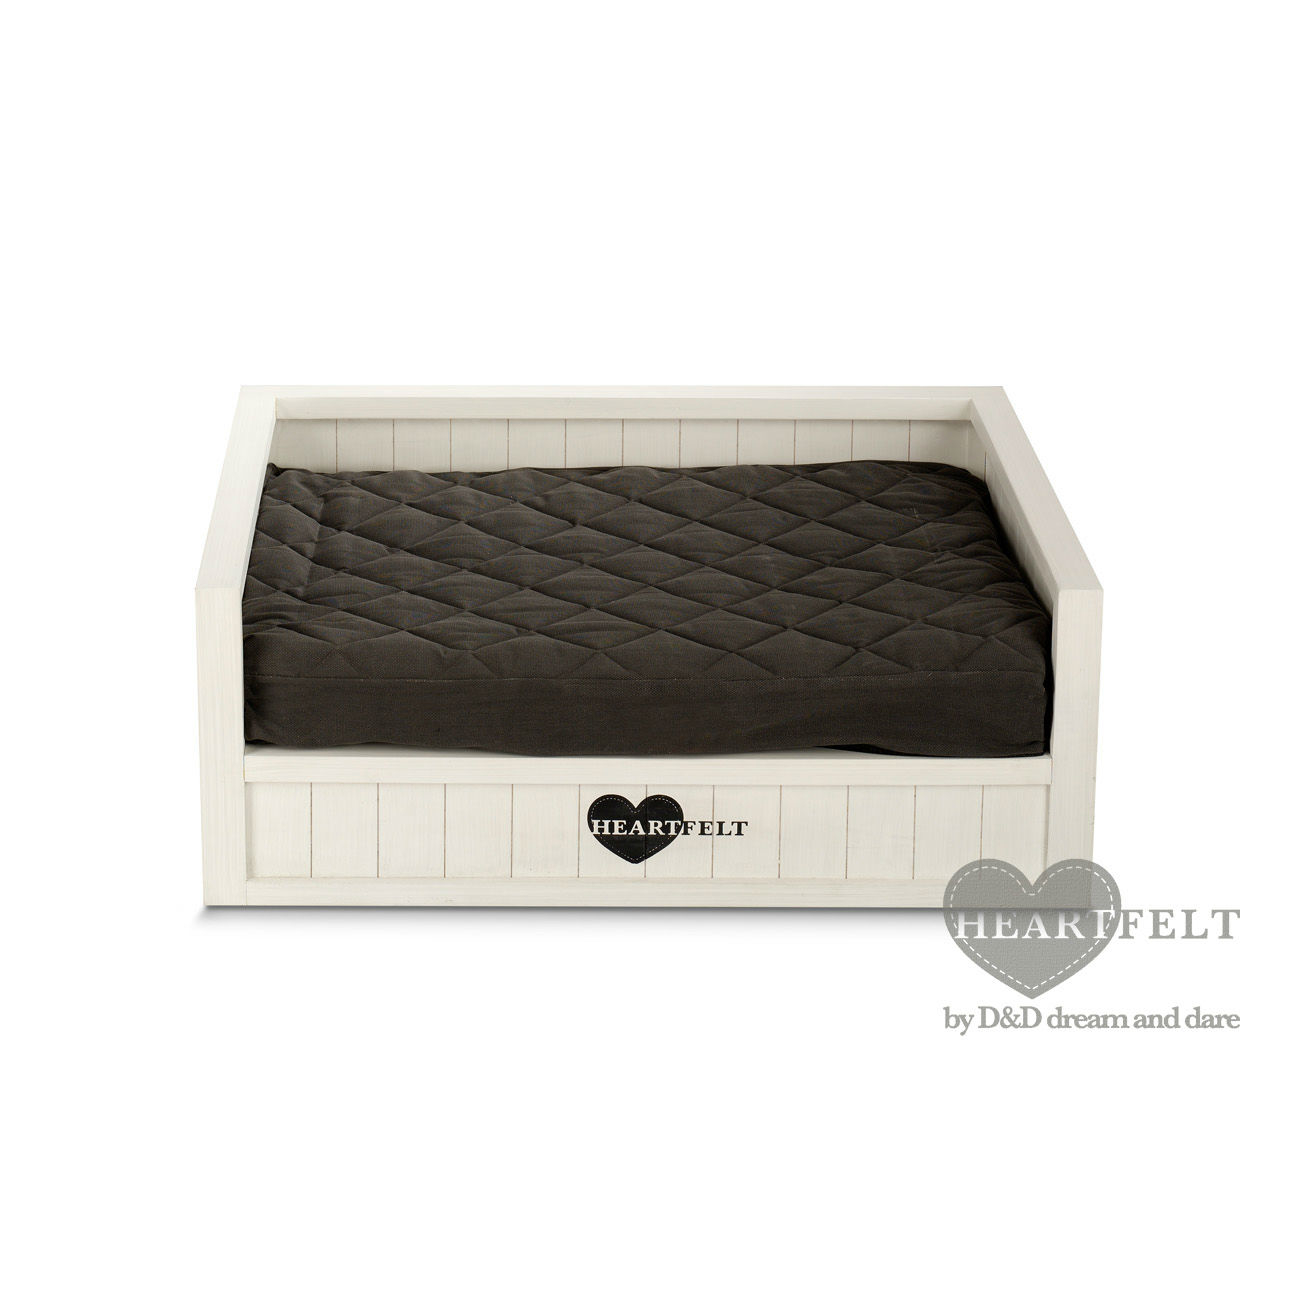 heartfelt villanova hundebett aus holz wei von europet bernina g nstig bestellen. Black Bedroom Furniture Sets. Home Design Ideas